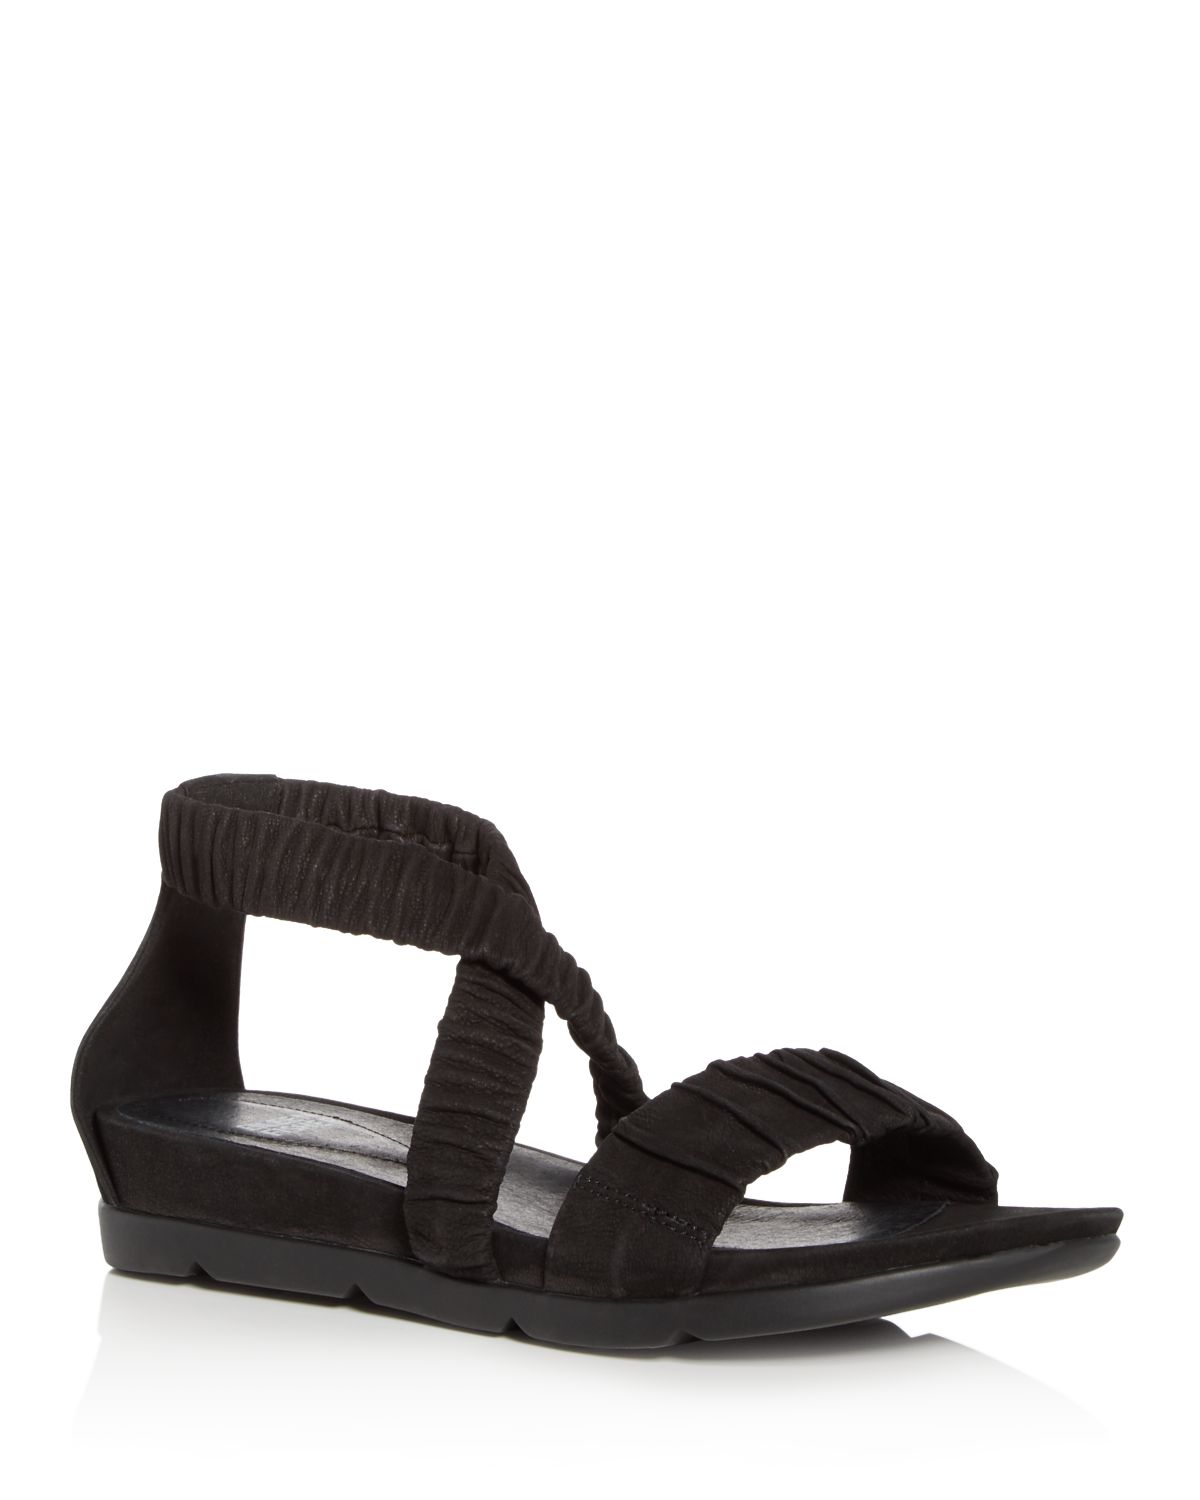 Eileen Fisher Women's Dylan Tumbled Nubuck Leather Demi Wedge Sandals